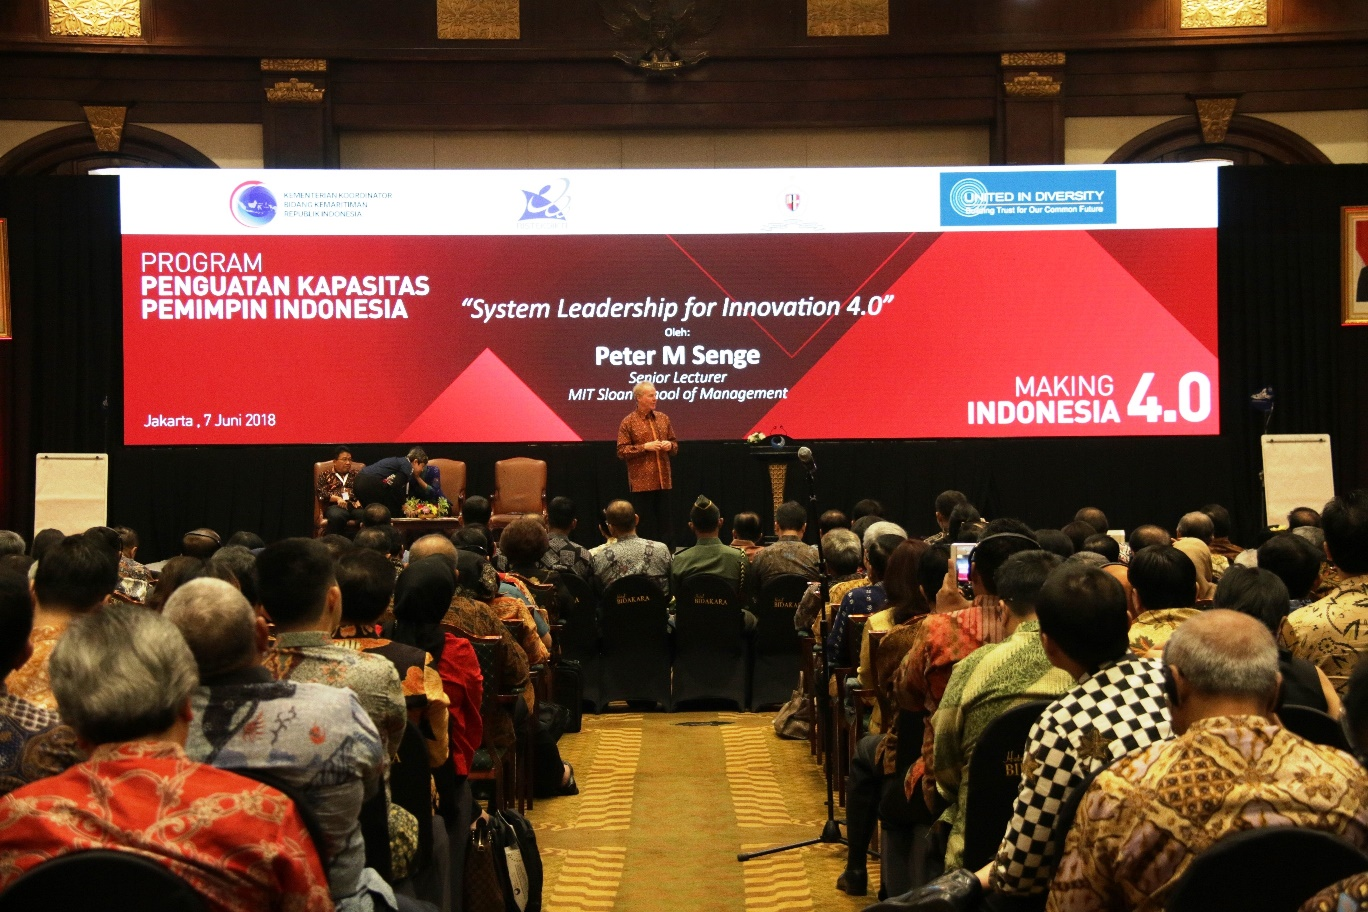 Program Penguatan Kapasitas Pemimpin Indonesia: Making Indonesia 4.0 Transforming the capacity of Indonesia's civil apparatus.